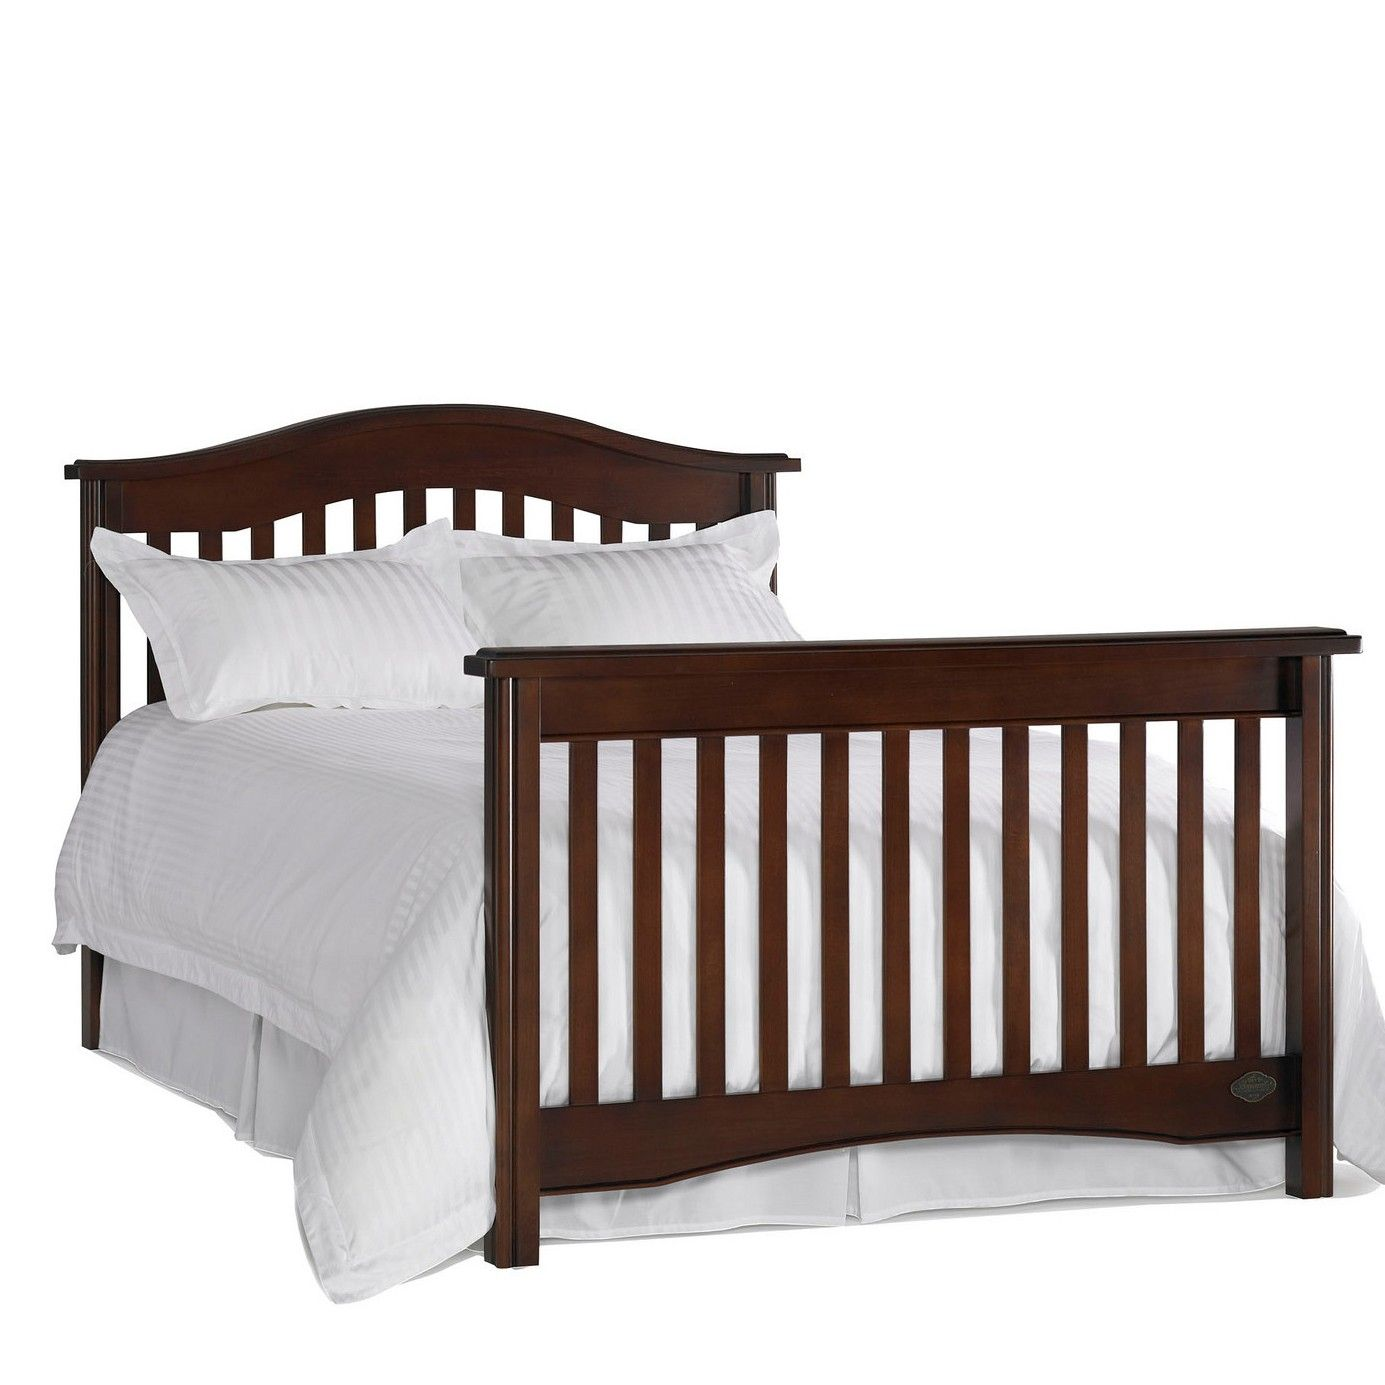 Bonavita crib for sale used - Bed Rails We Need For Lu S Crib Bonavita Hudson Collection Full Size Bed Rails In Chocolate